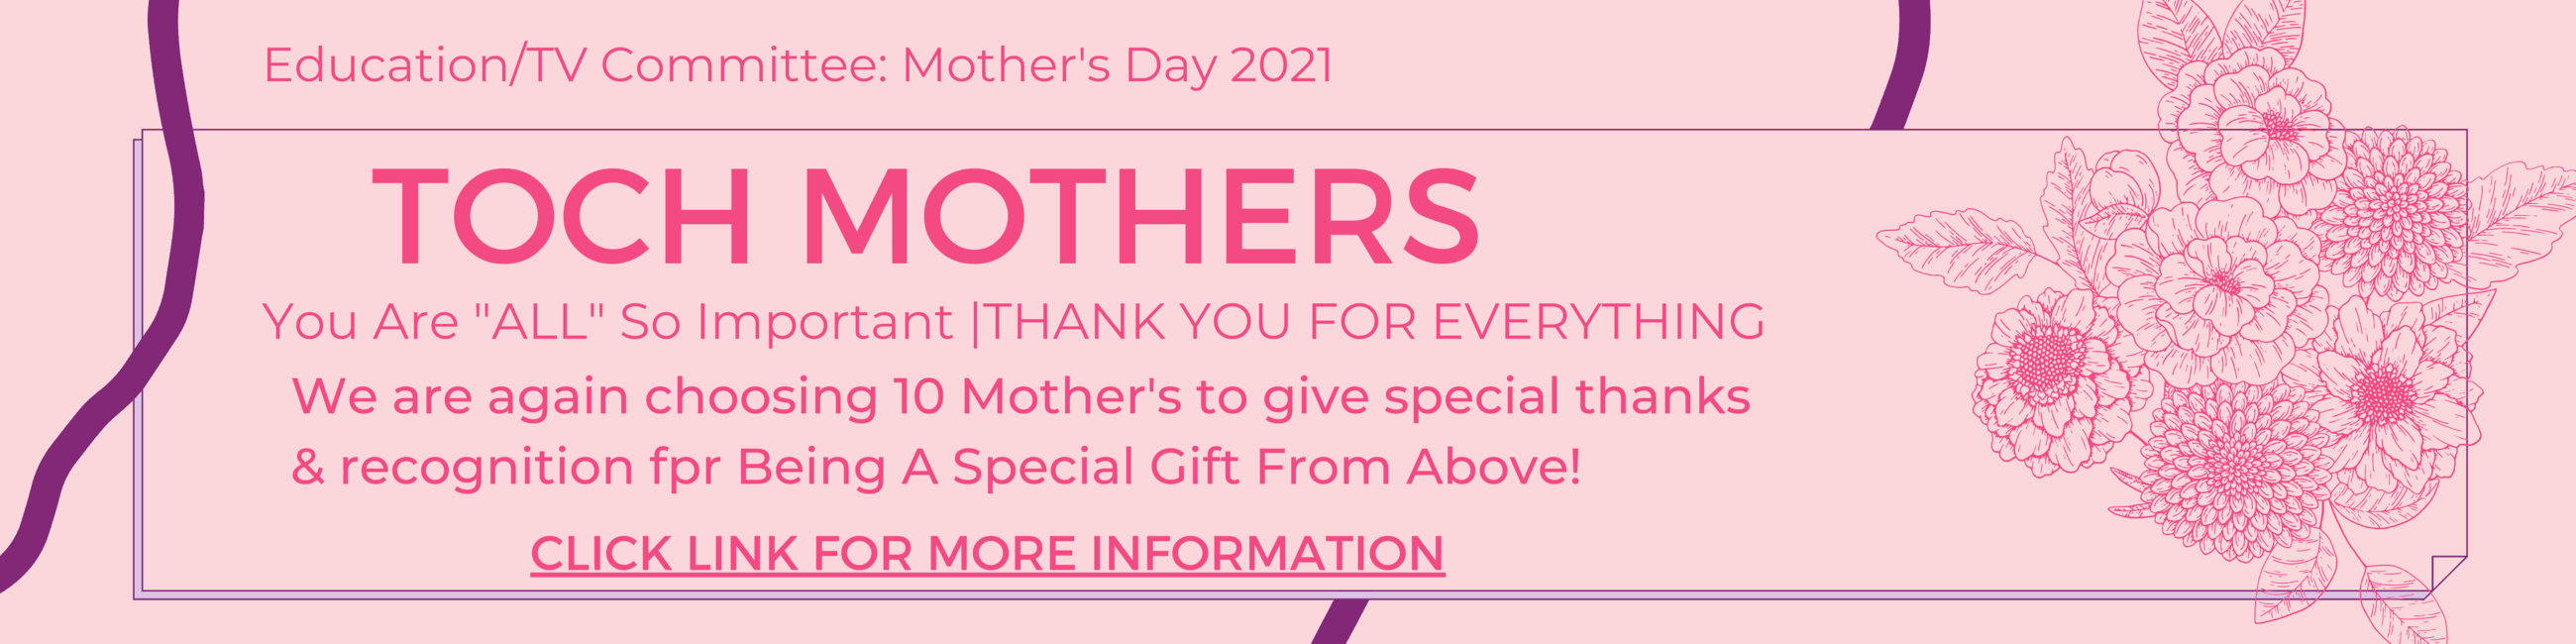 TOCH-EDUC-TV_Mothers-Day-2021_Special Thanks